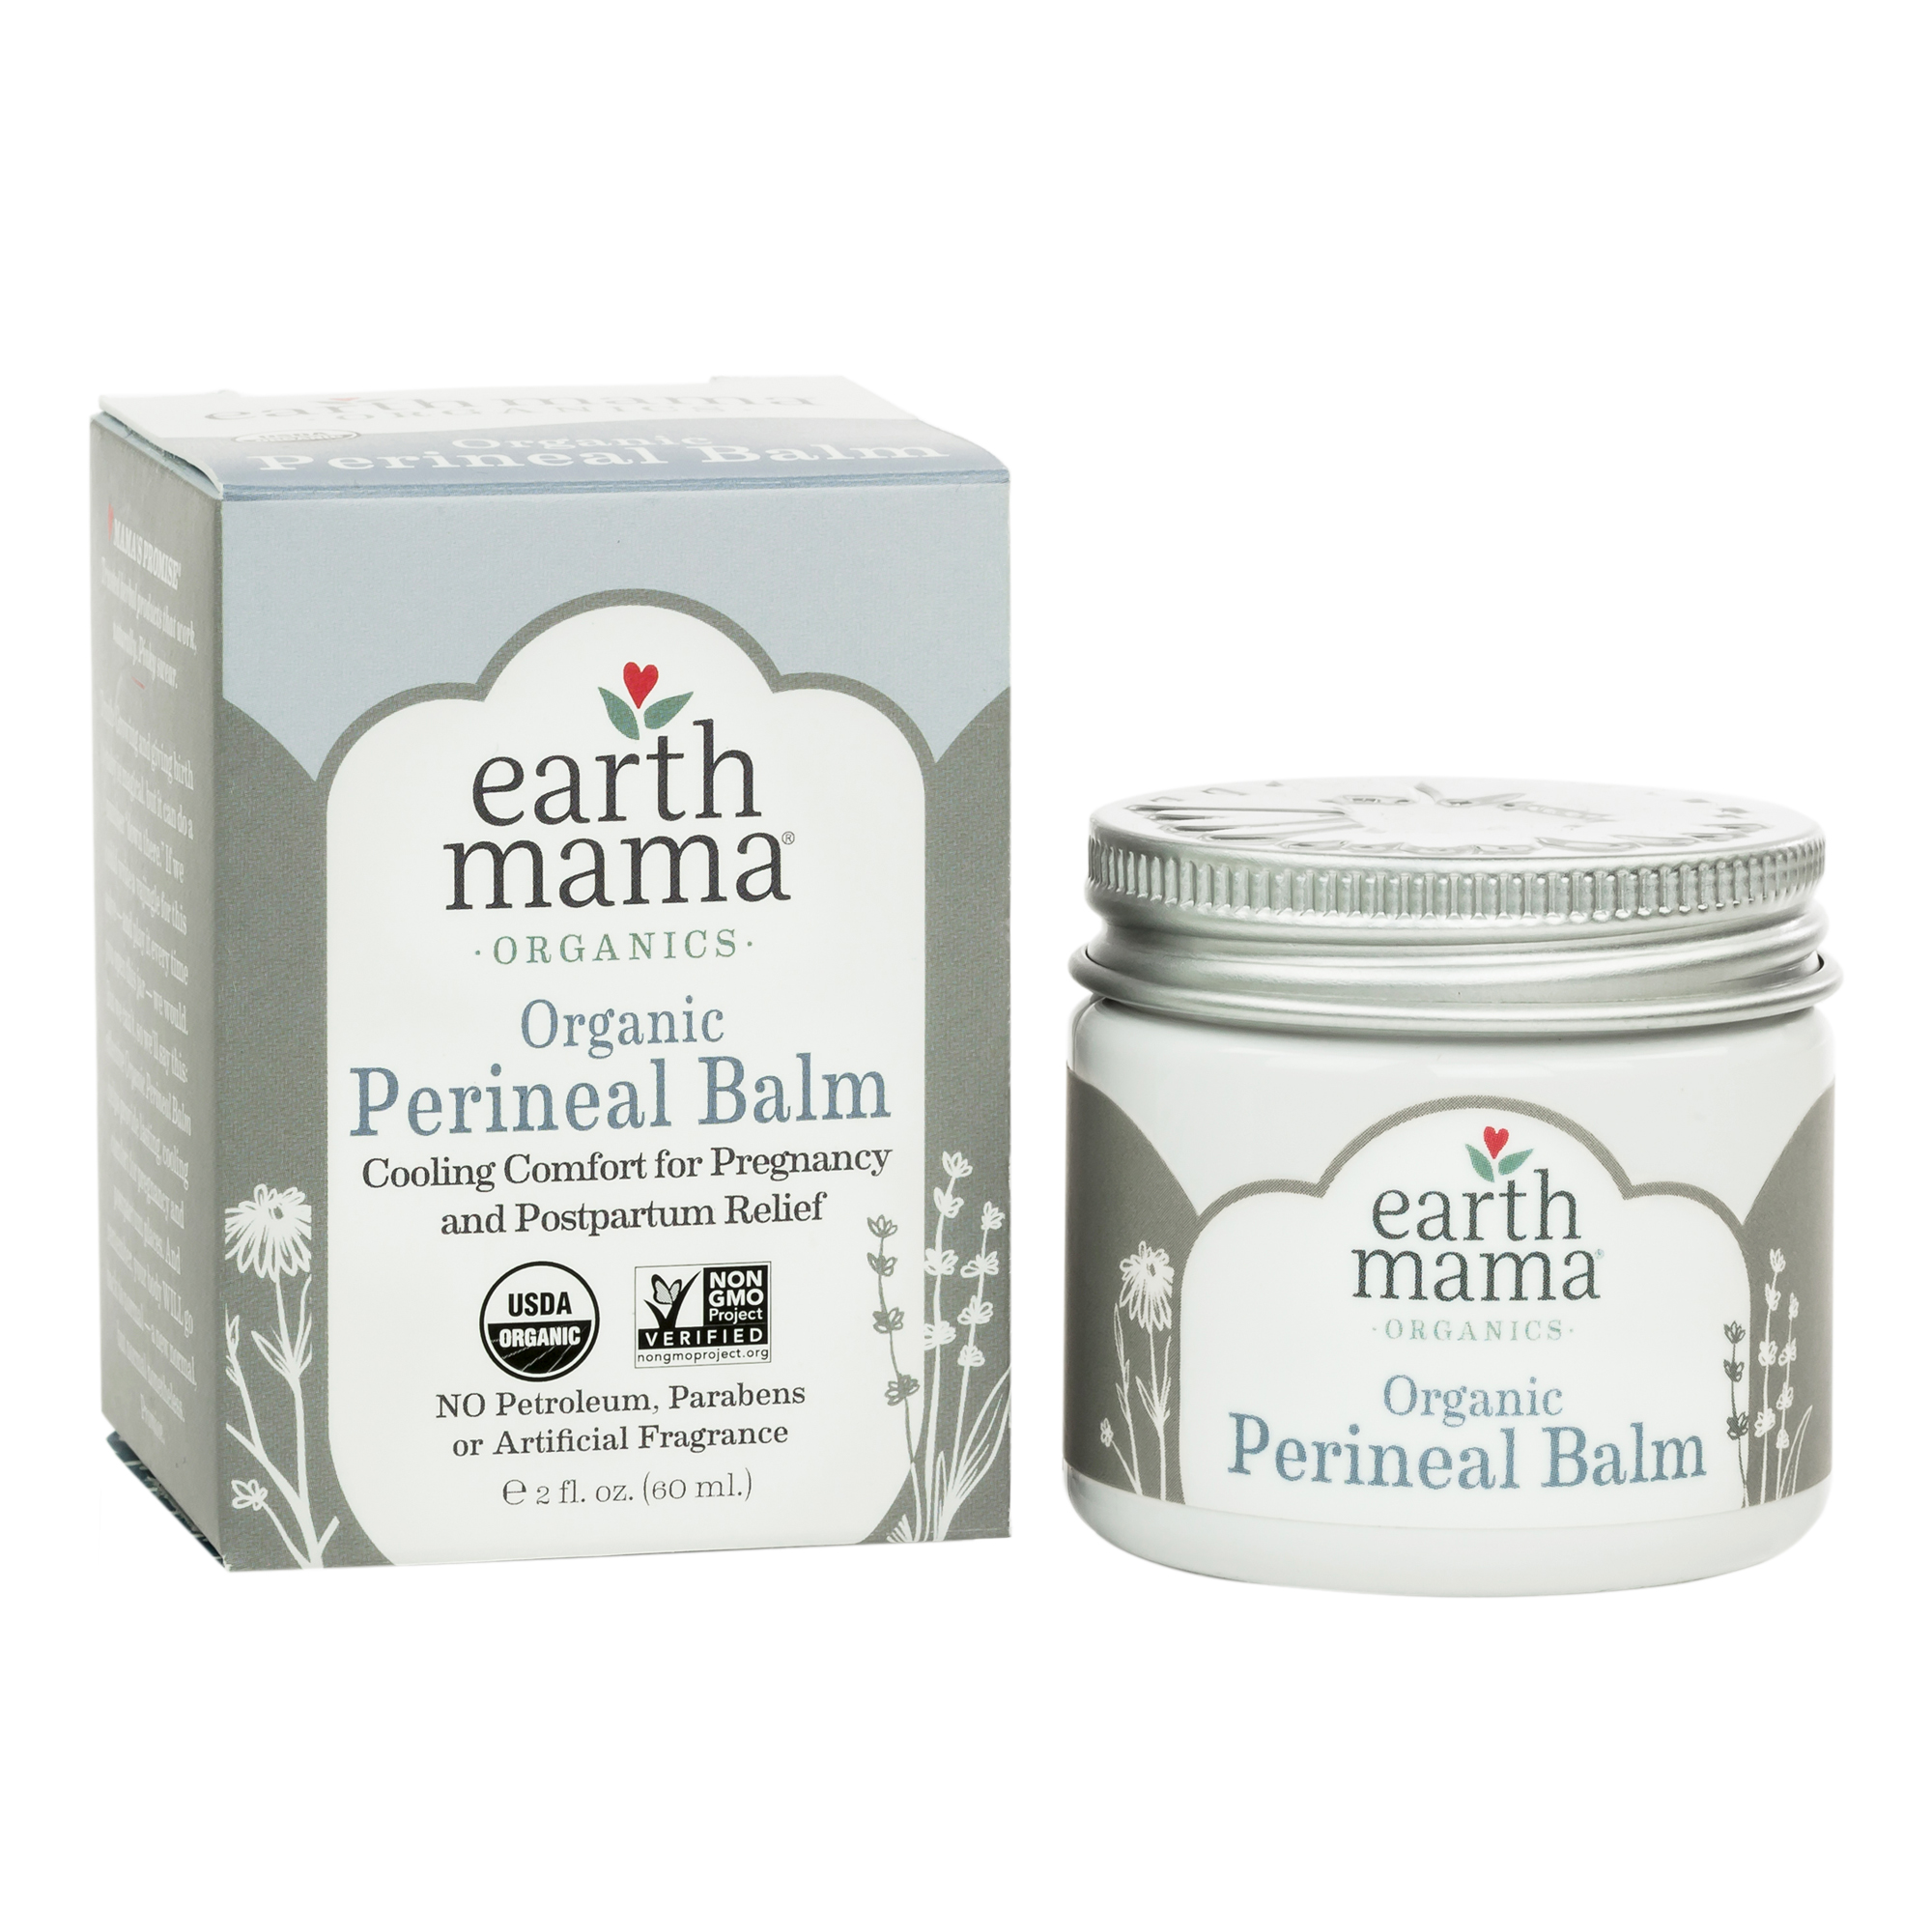 Earth Mama Organic Perineal Balm Down There Care for Pregnancy and Postpartum, 2-Ounce